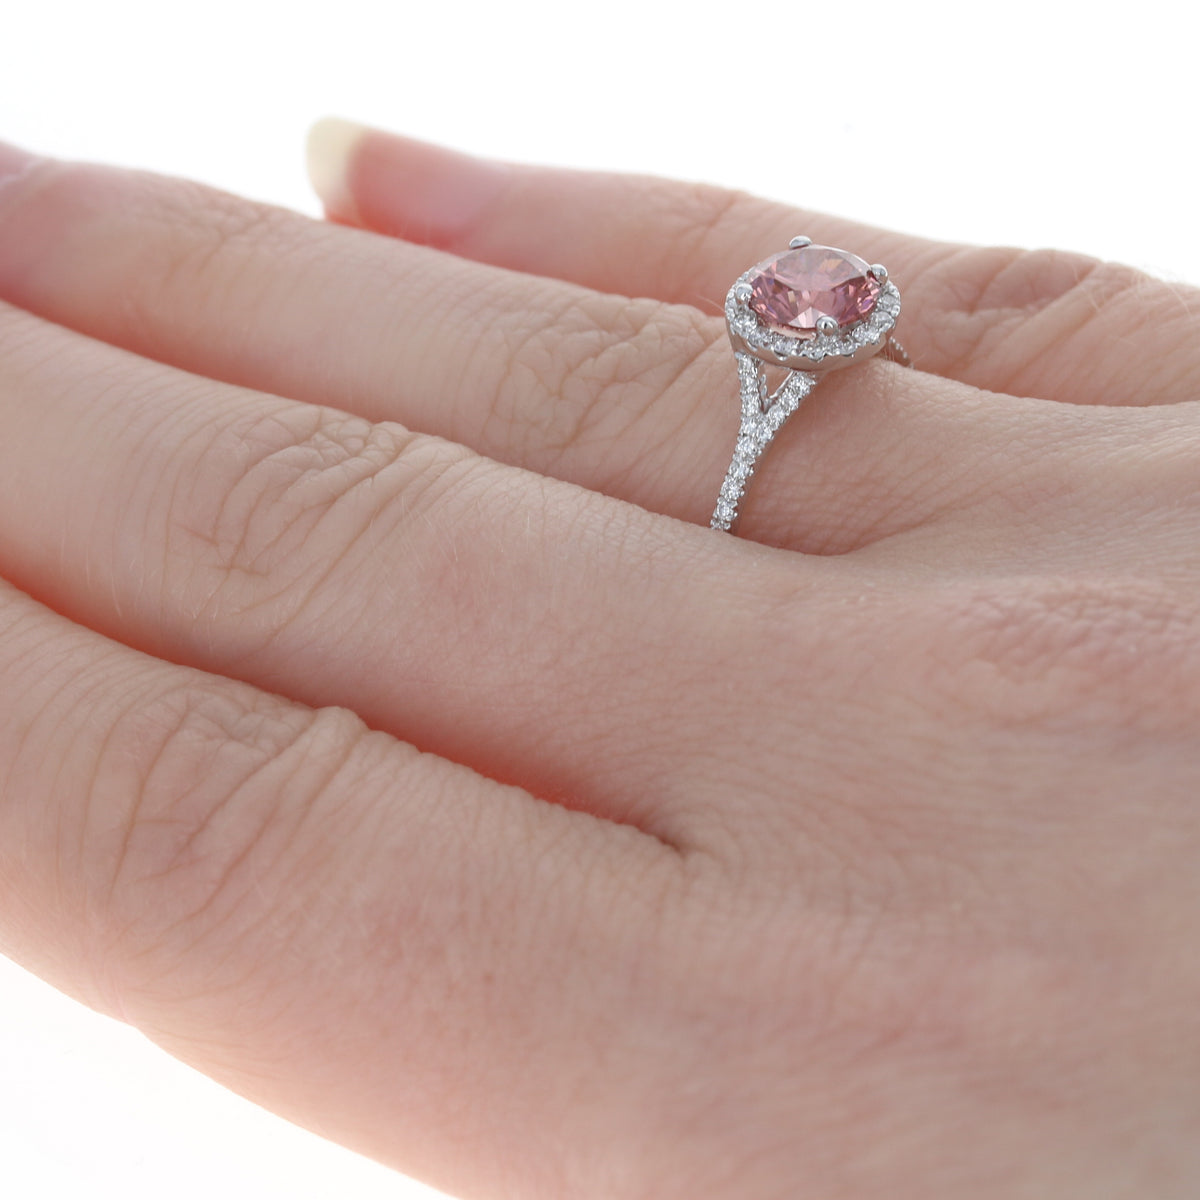 1.21ct Fancy Deep Pink Diamond Ring White Gold